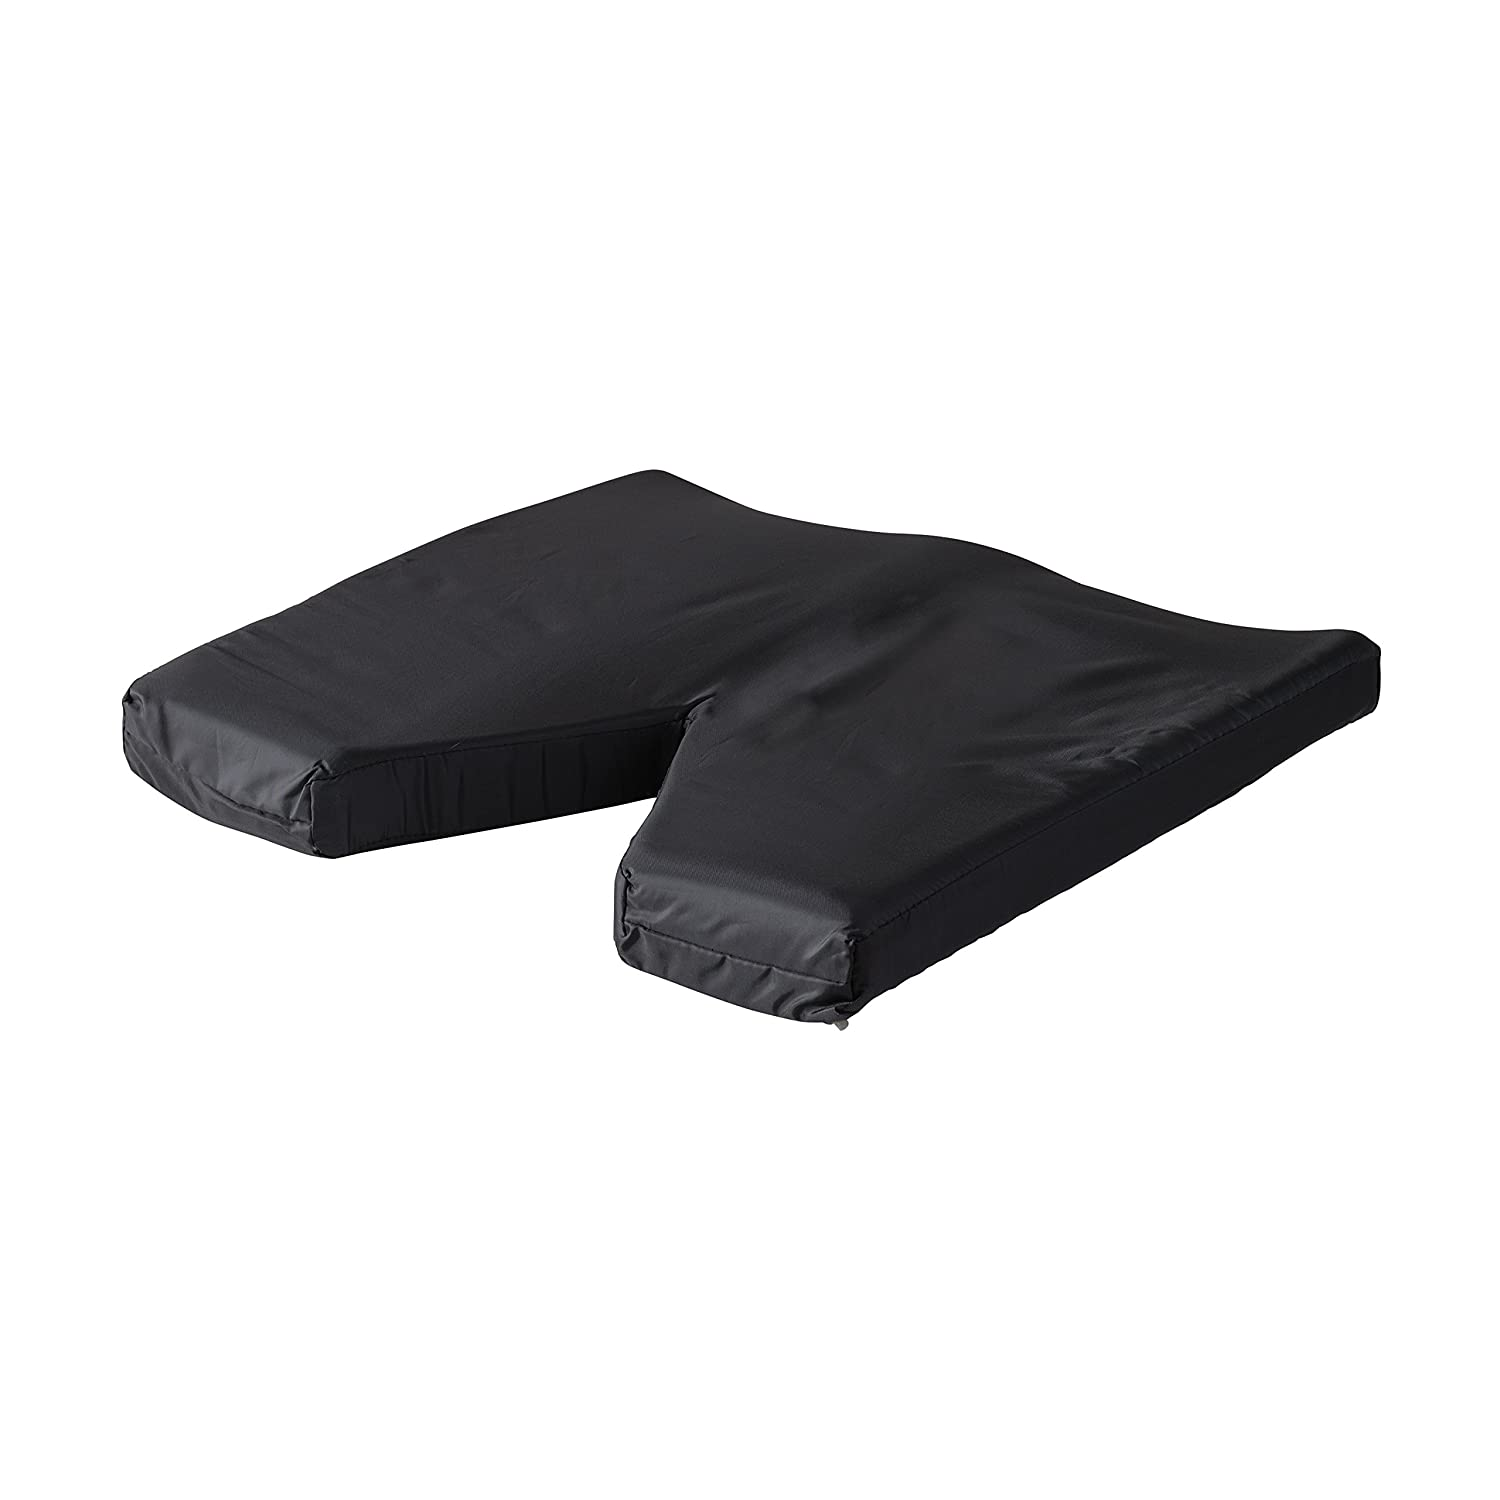 18 x 16 x 2 inches Black For Chair or Wheelchair DMI Comfort Contoured Foam Coccyx Seat Cushion for Sciatica Back Pain with Nylon Oxford Cover